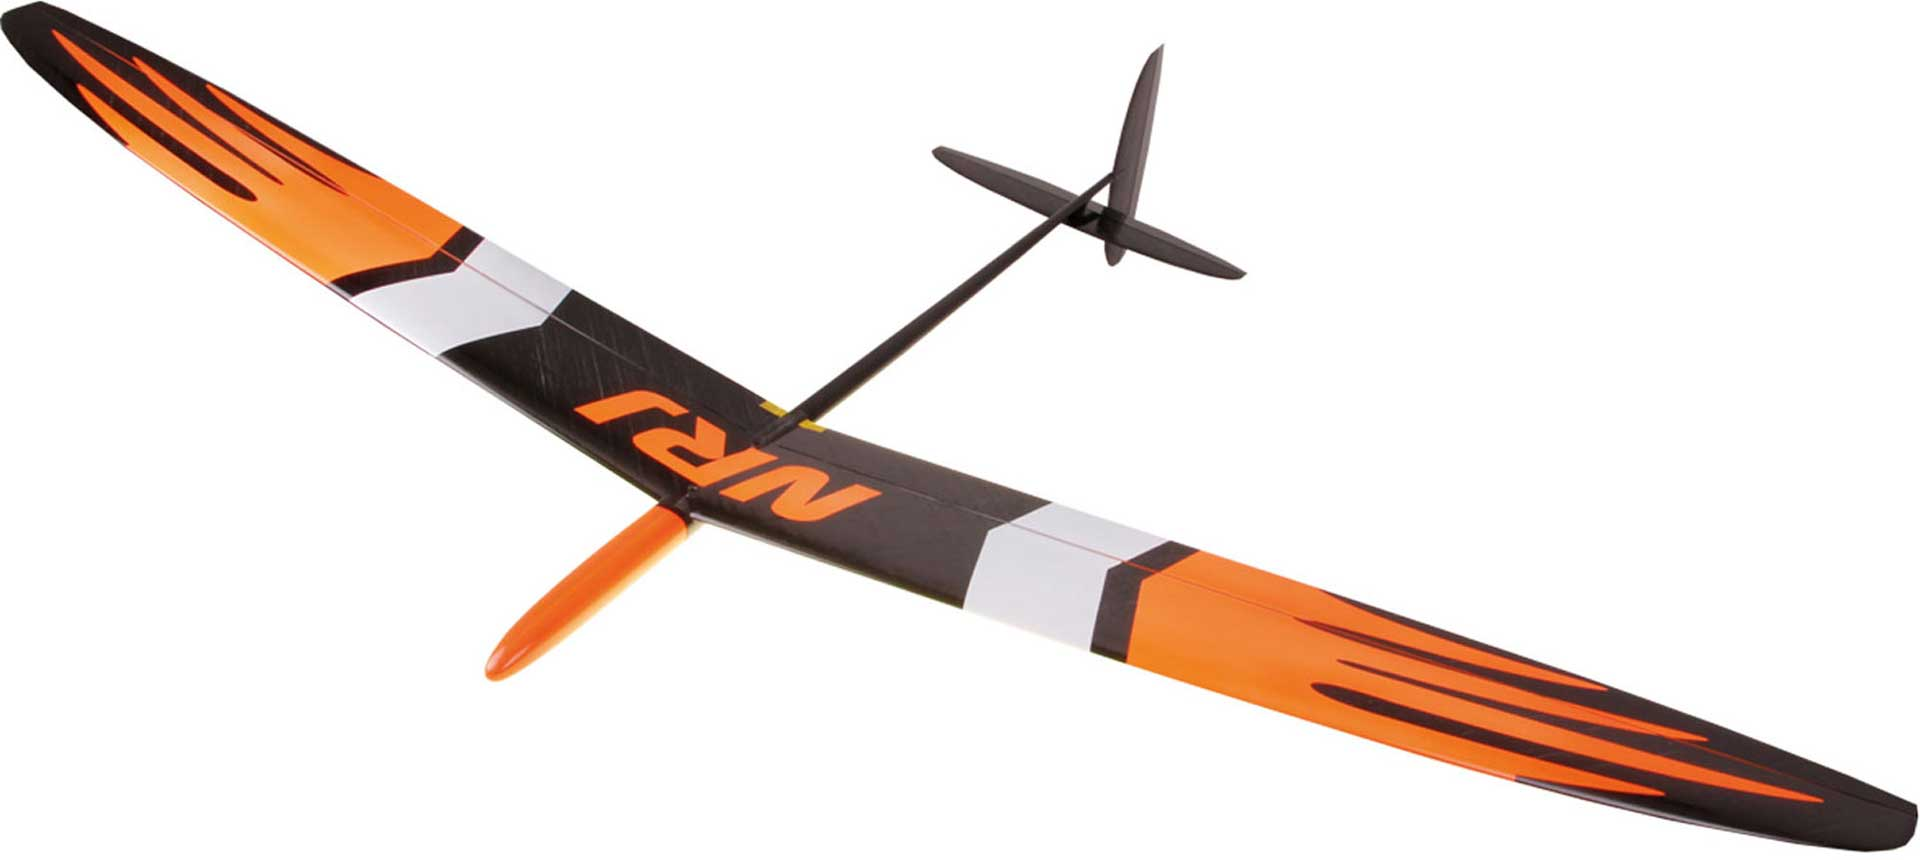 OA-COMPOSITES NRJ F3K ORANGE # 18 CW40 SPIN GLIDER